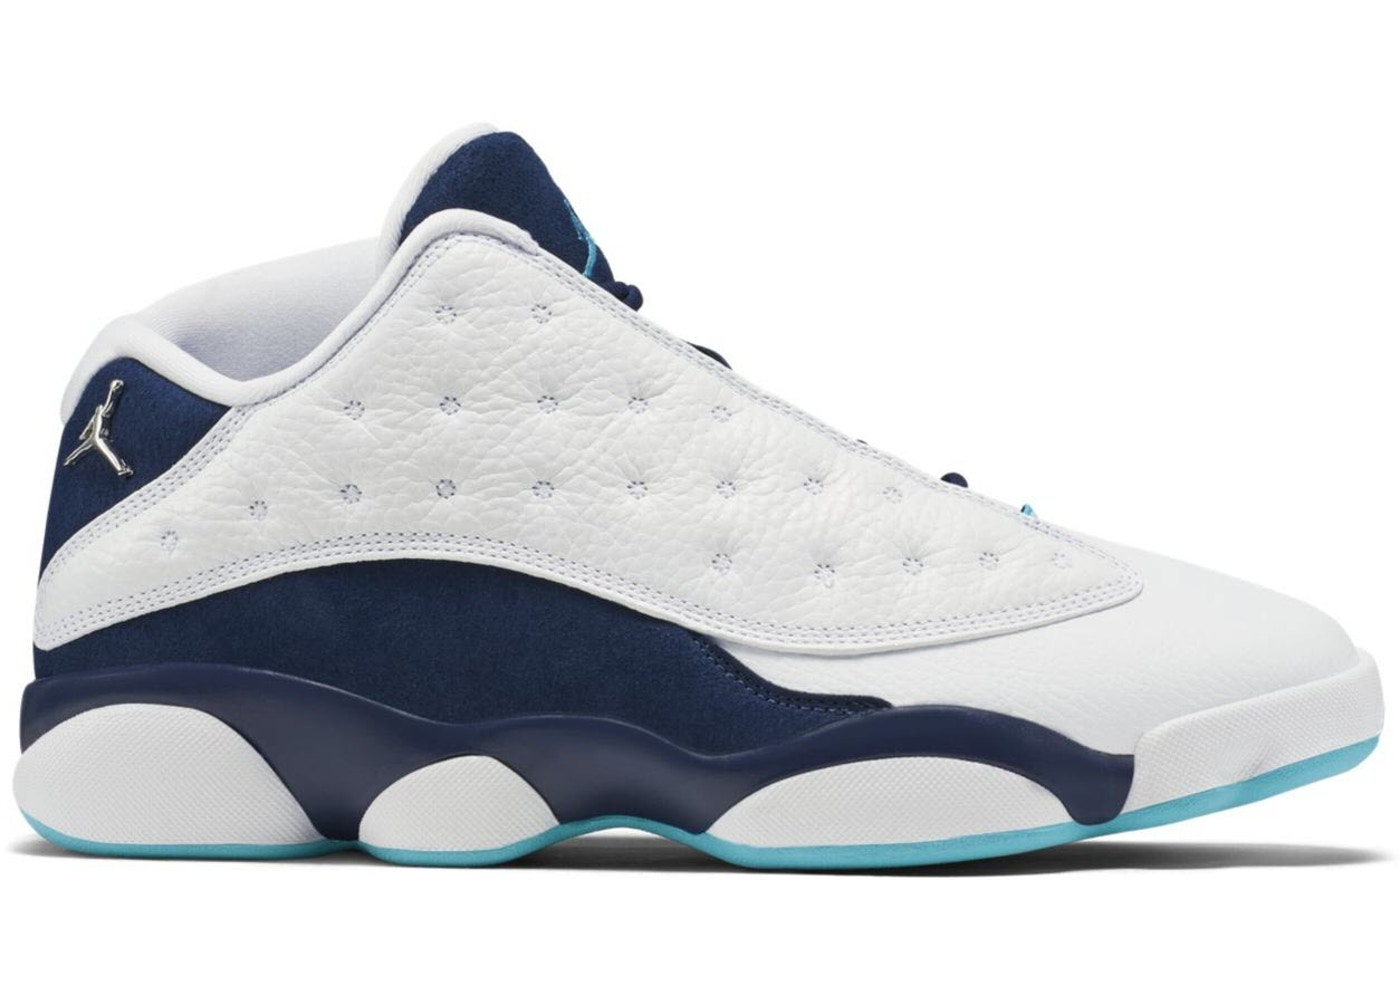 6f194db9ad48 Jordan 13 Retro Low Hornets - 310810-107